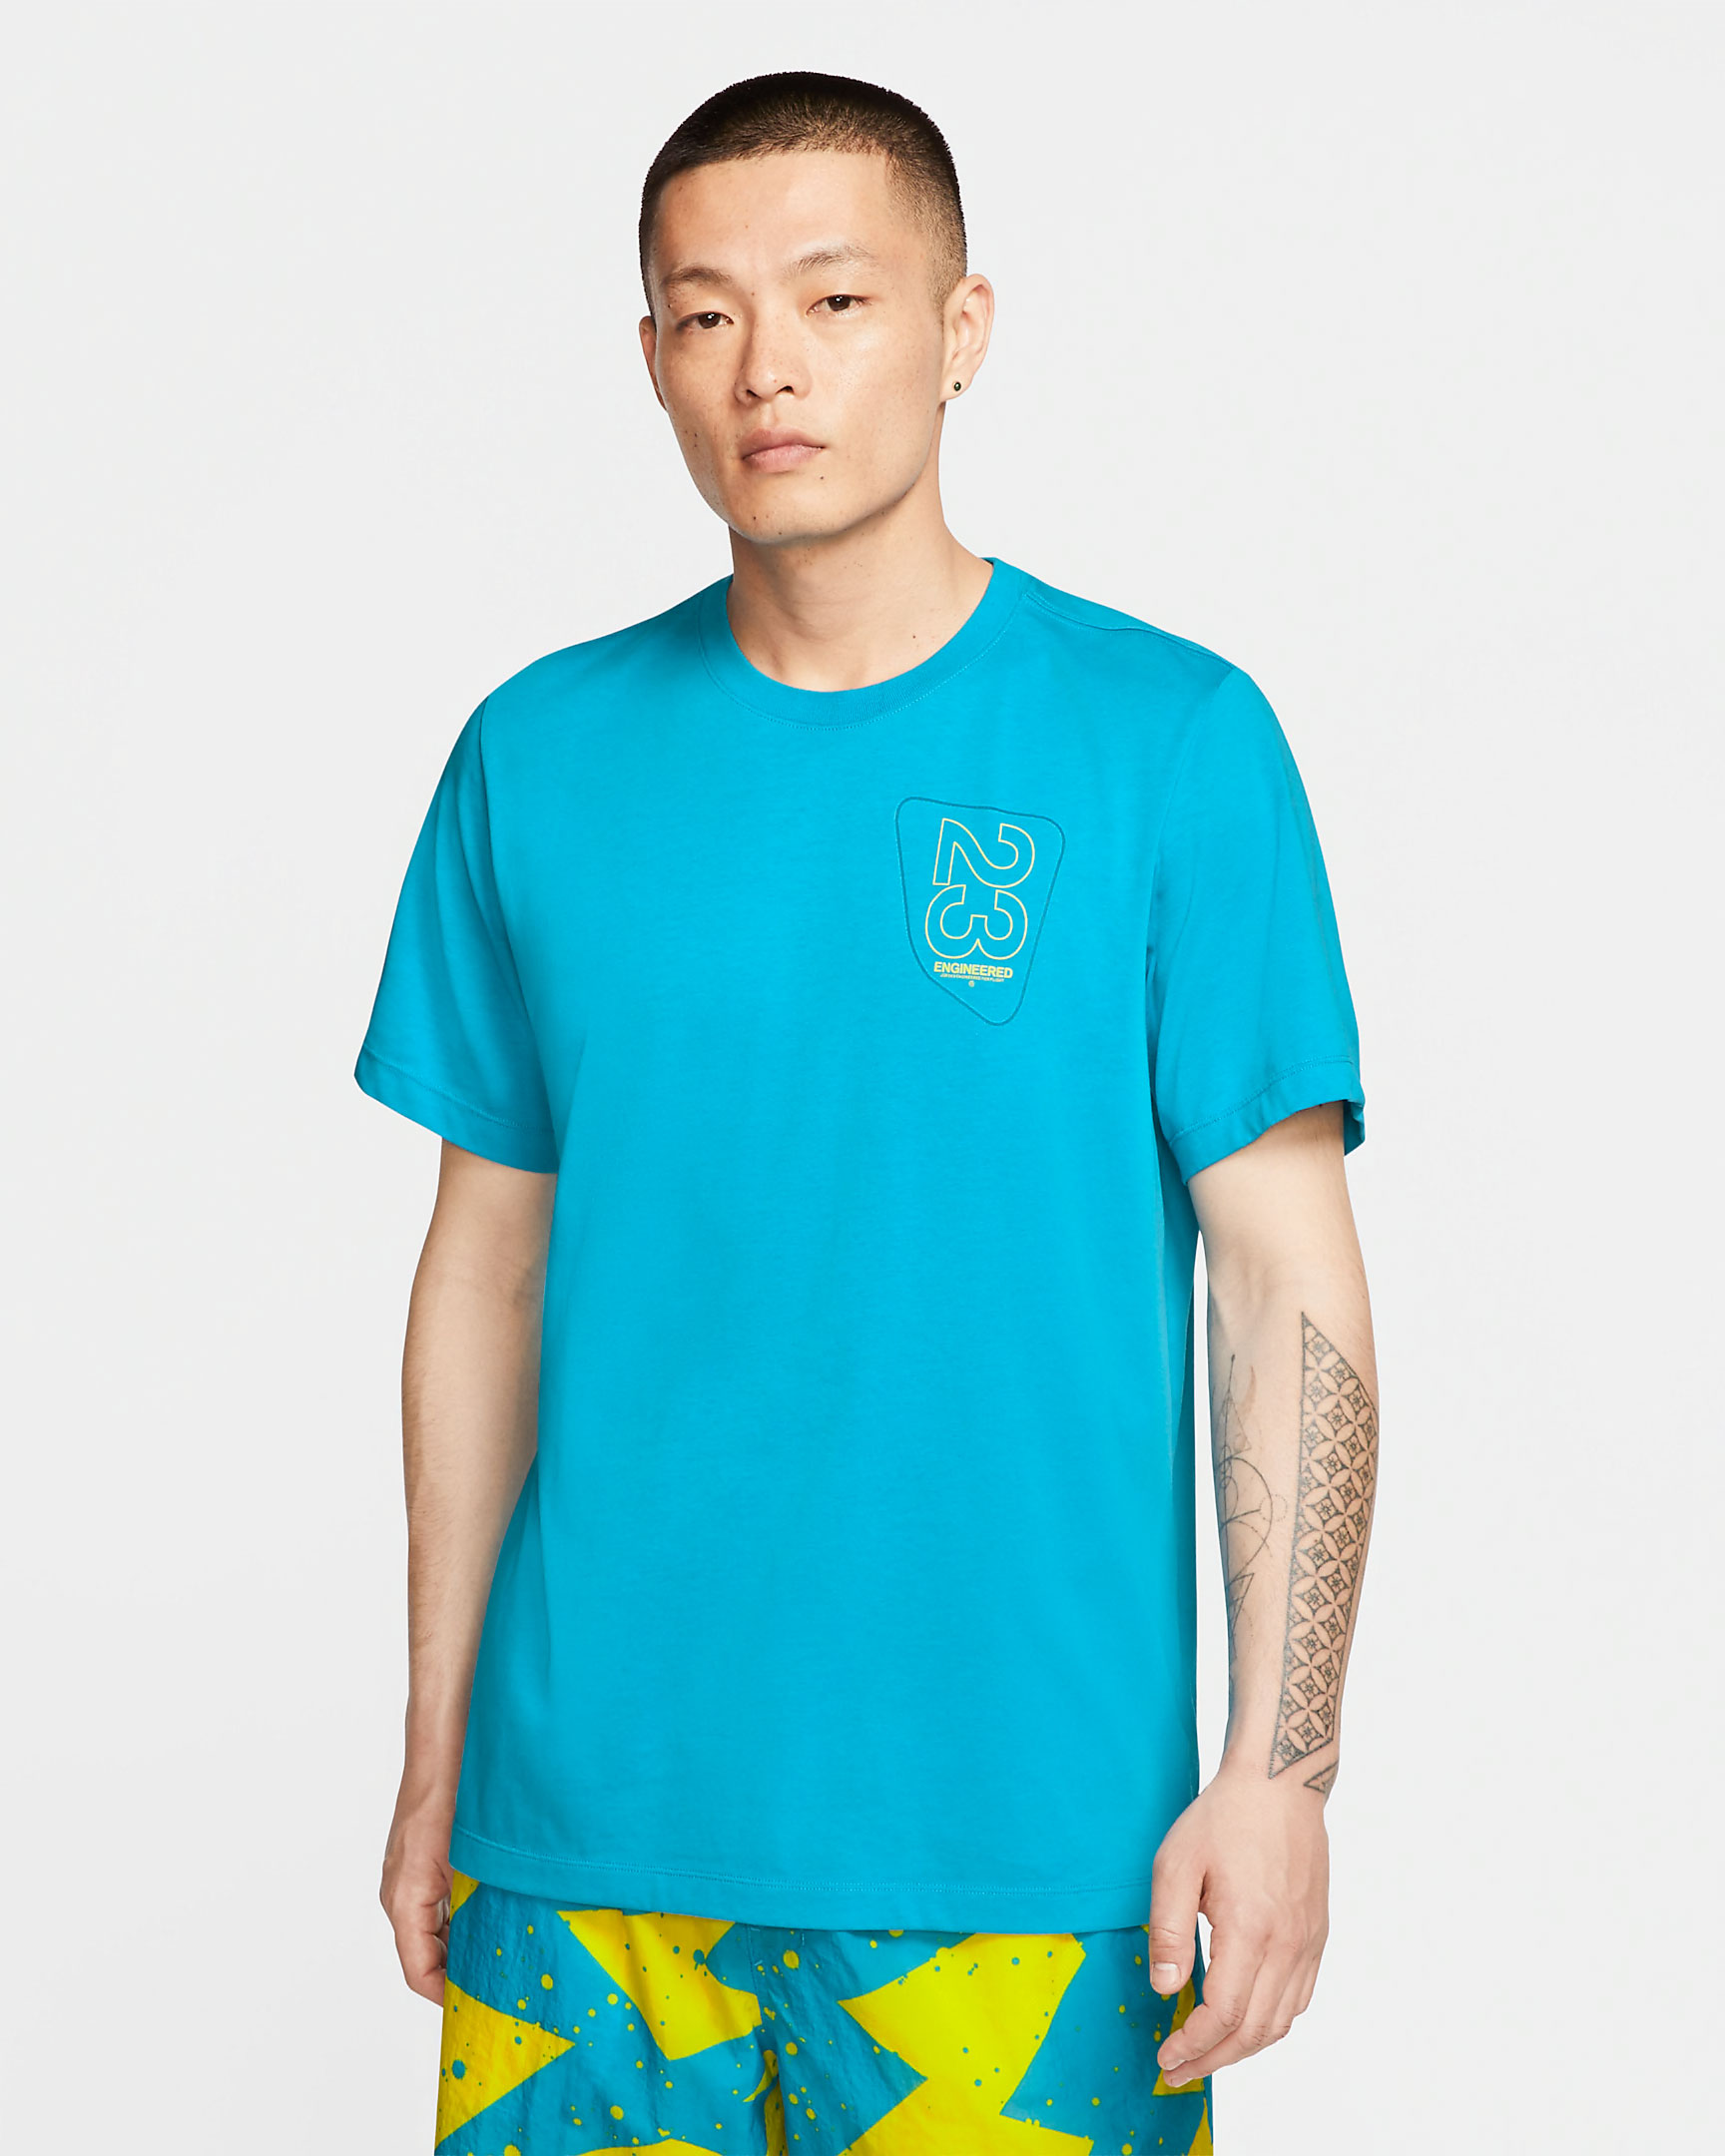 jordan-23-engineered-shirt-blue-green-1